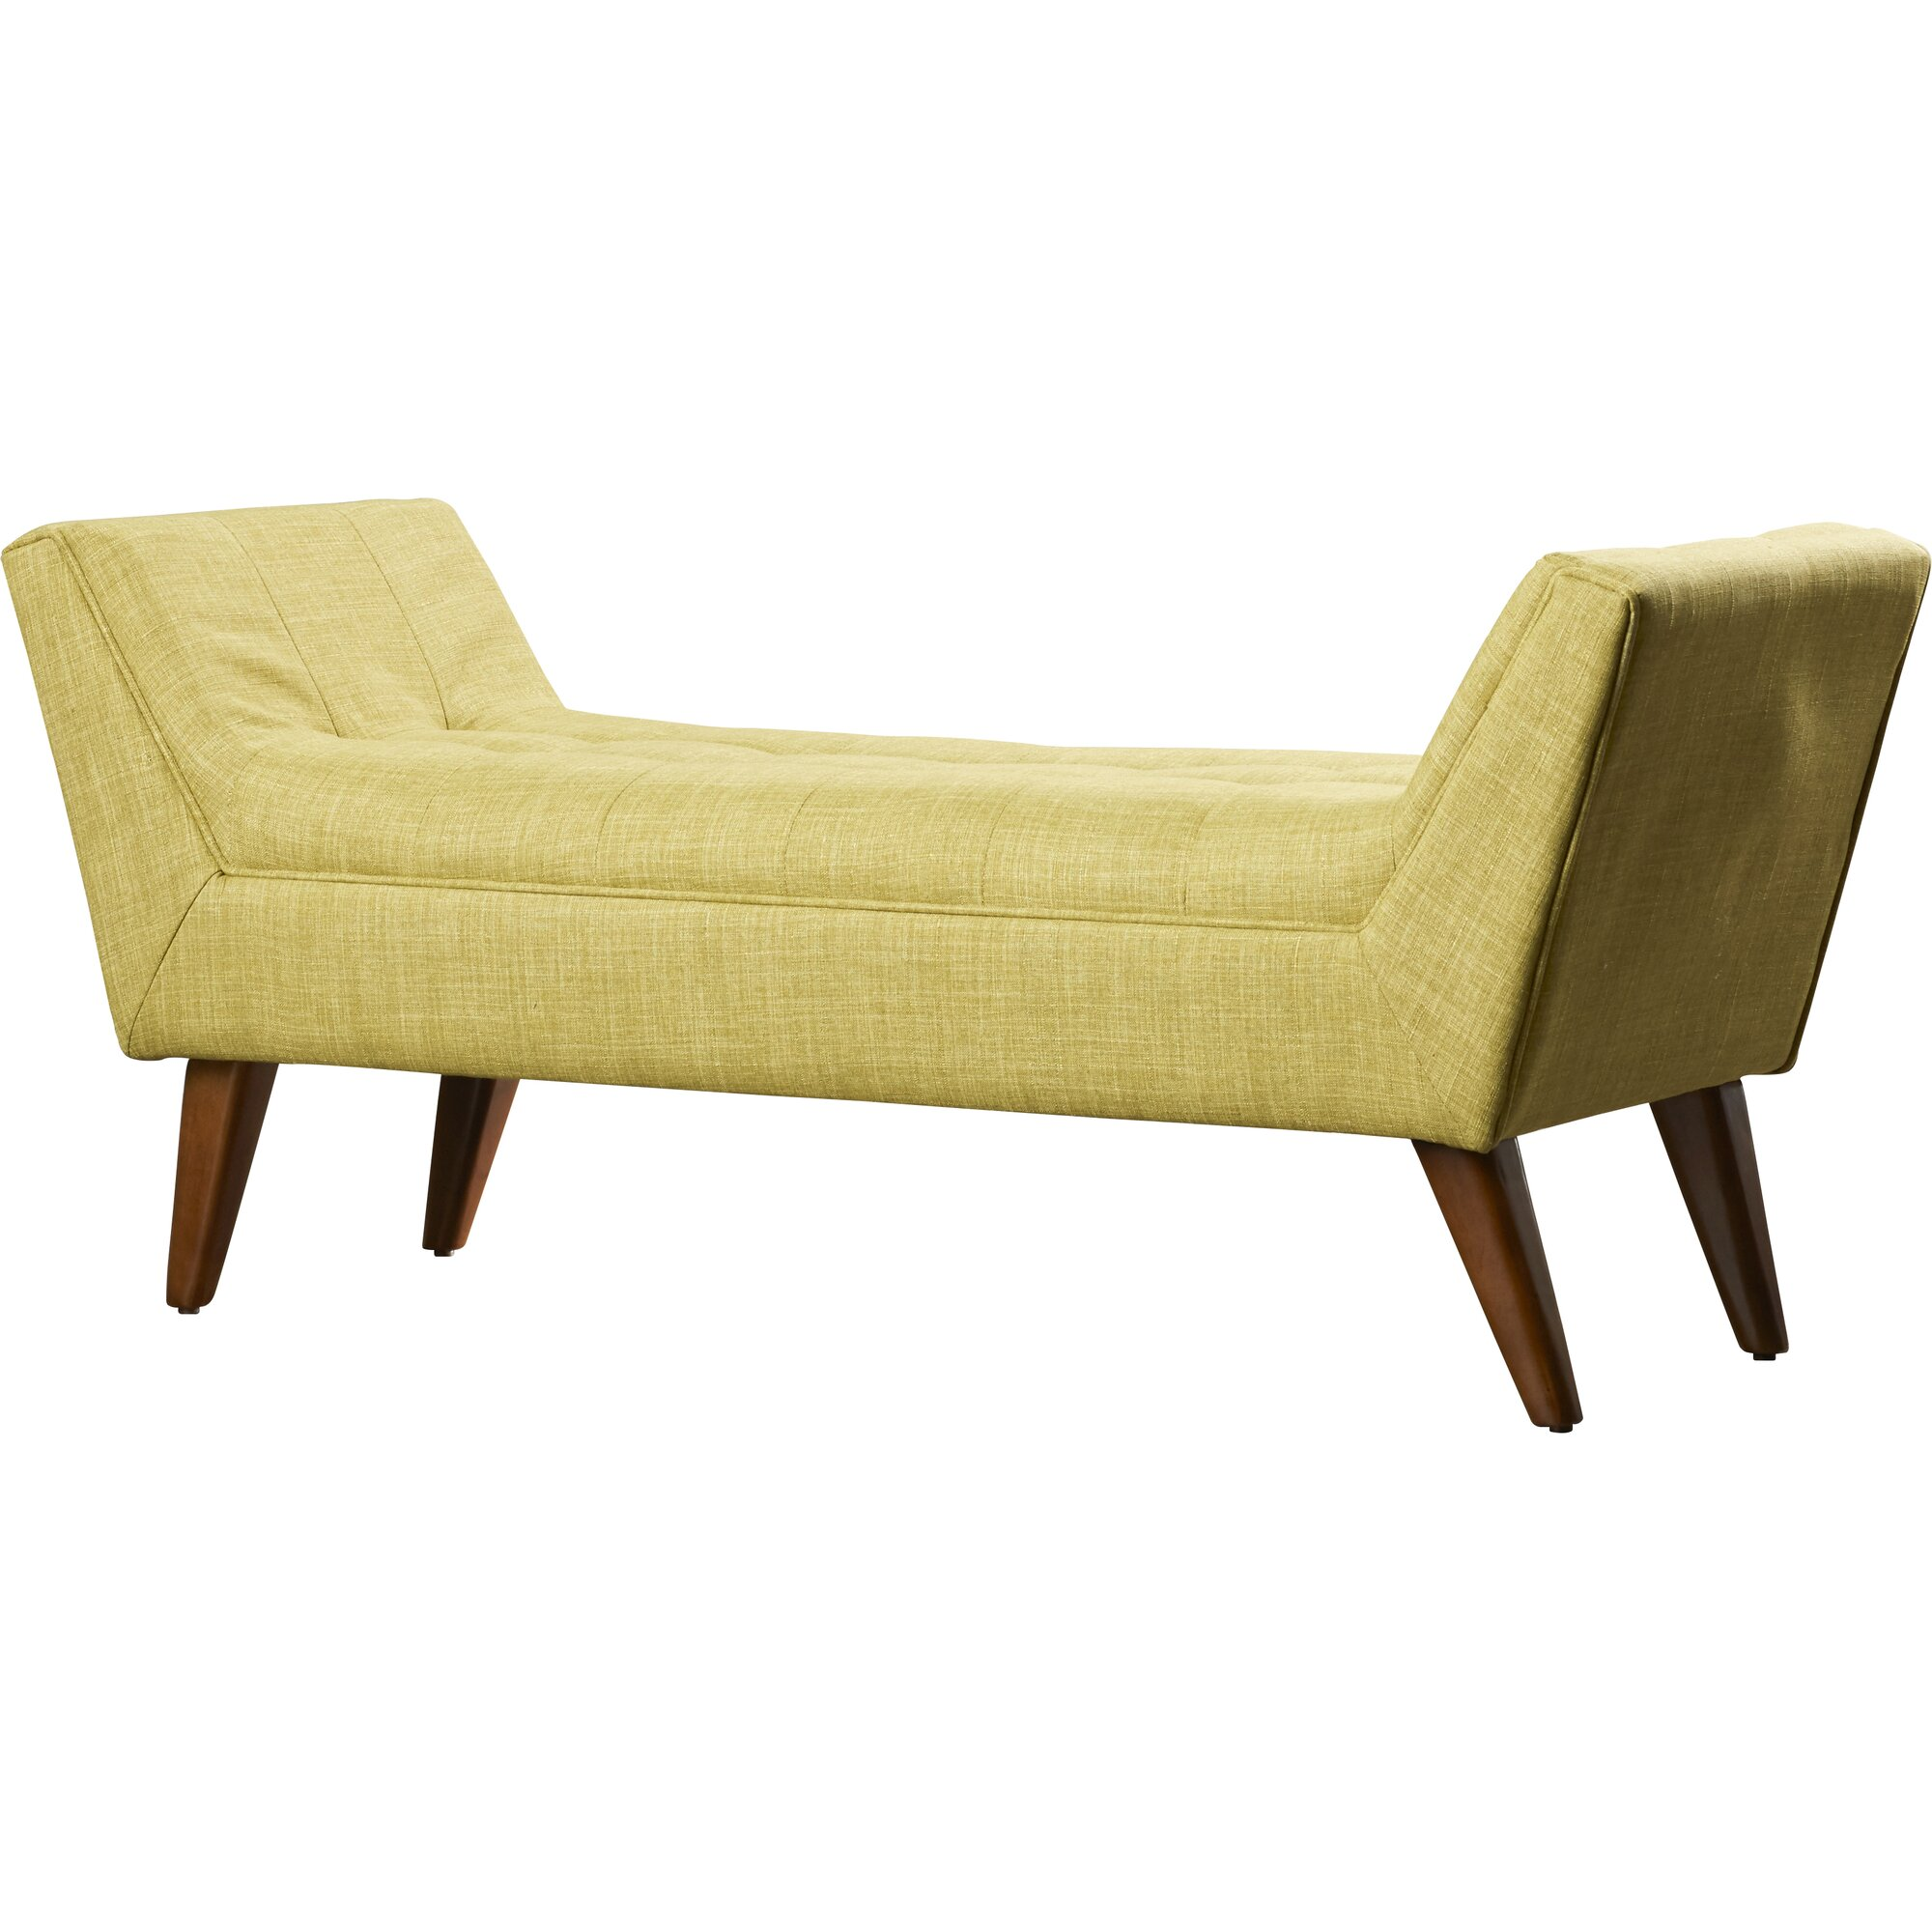 Bedroom bench with arms - Serena Upholstered Bedroom Bench